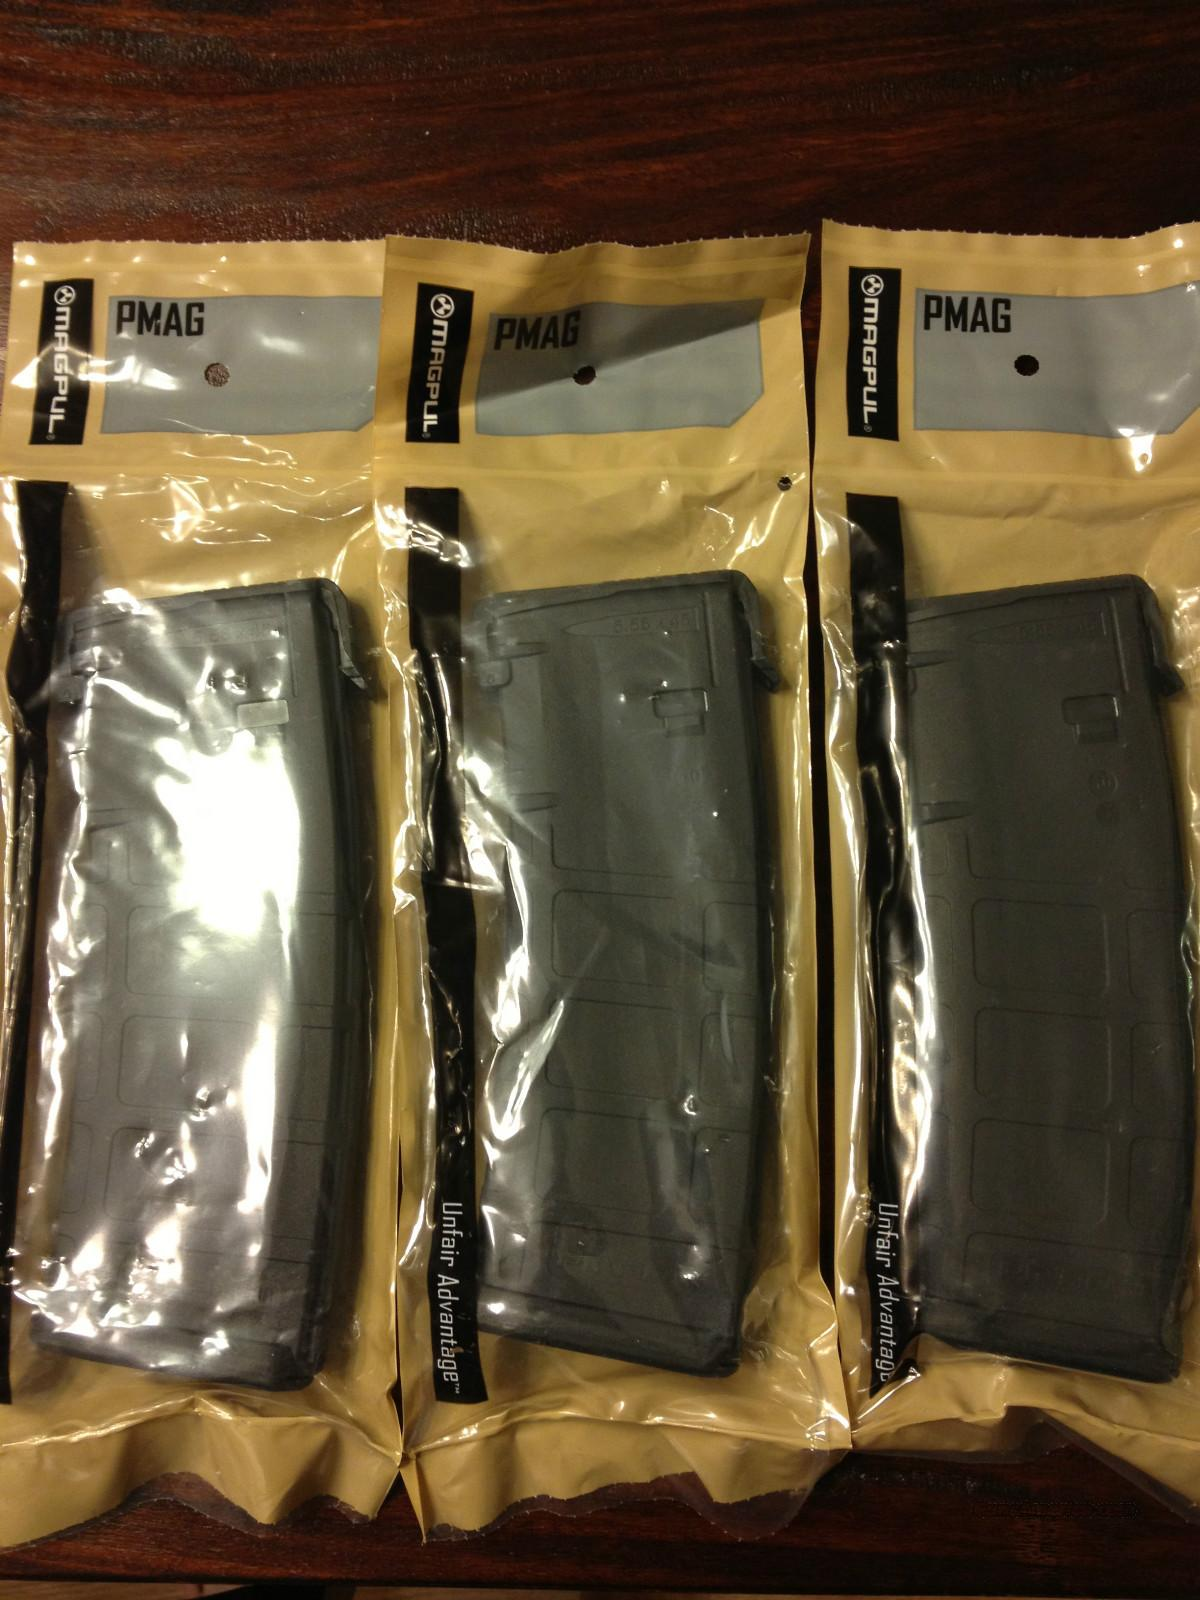 3 Magpul PMAGs - Black - NEW - 30 Round  - AR15 / M16 Magazine - AR-15 Mags  Non-Guns > Magazines & Clips > Rifle Magazines > AR-15 Type